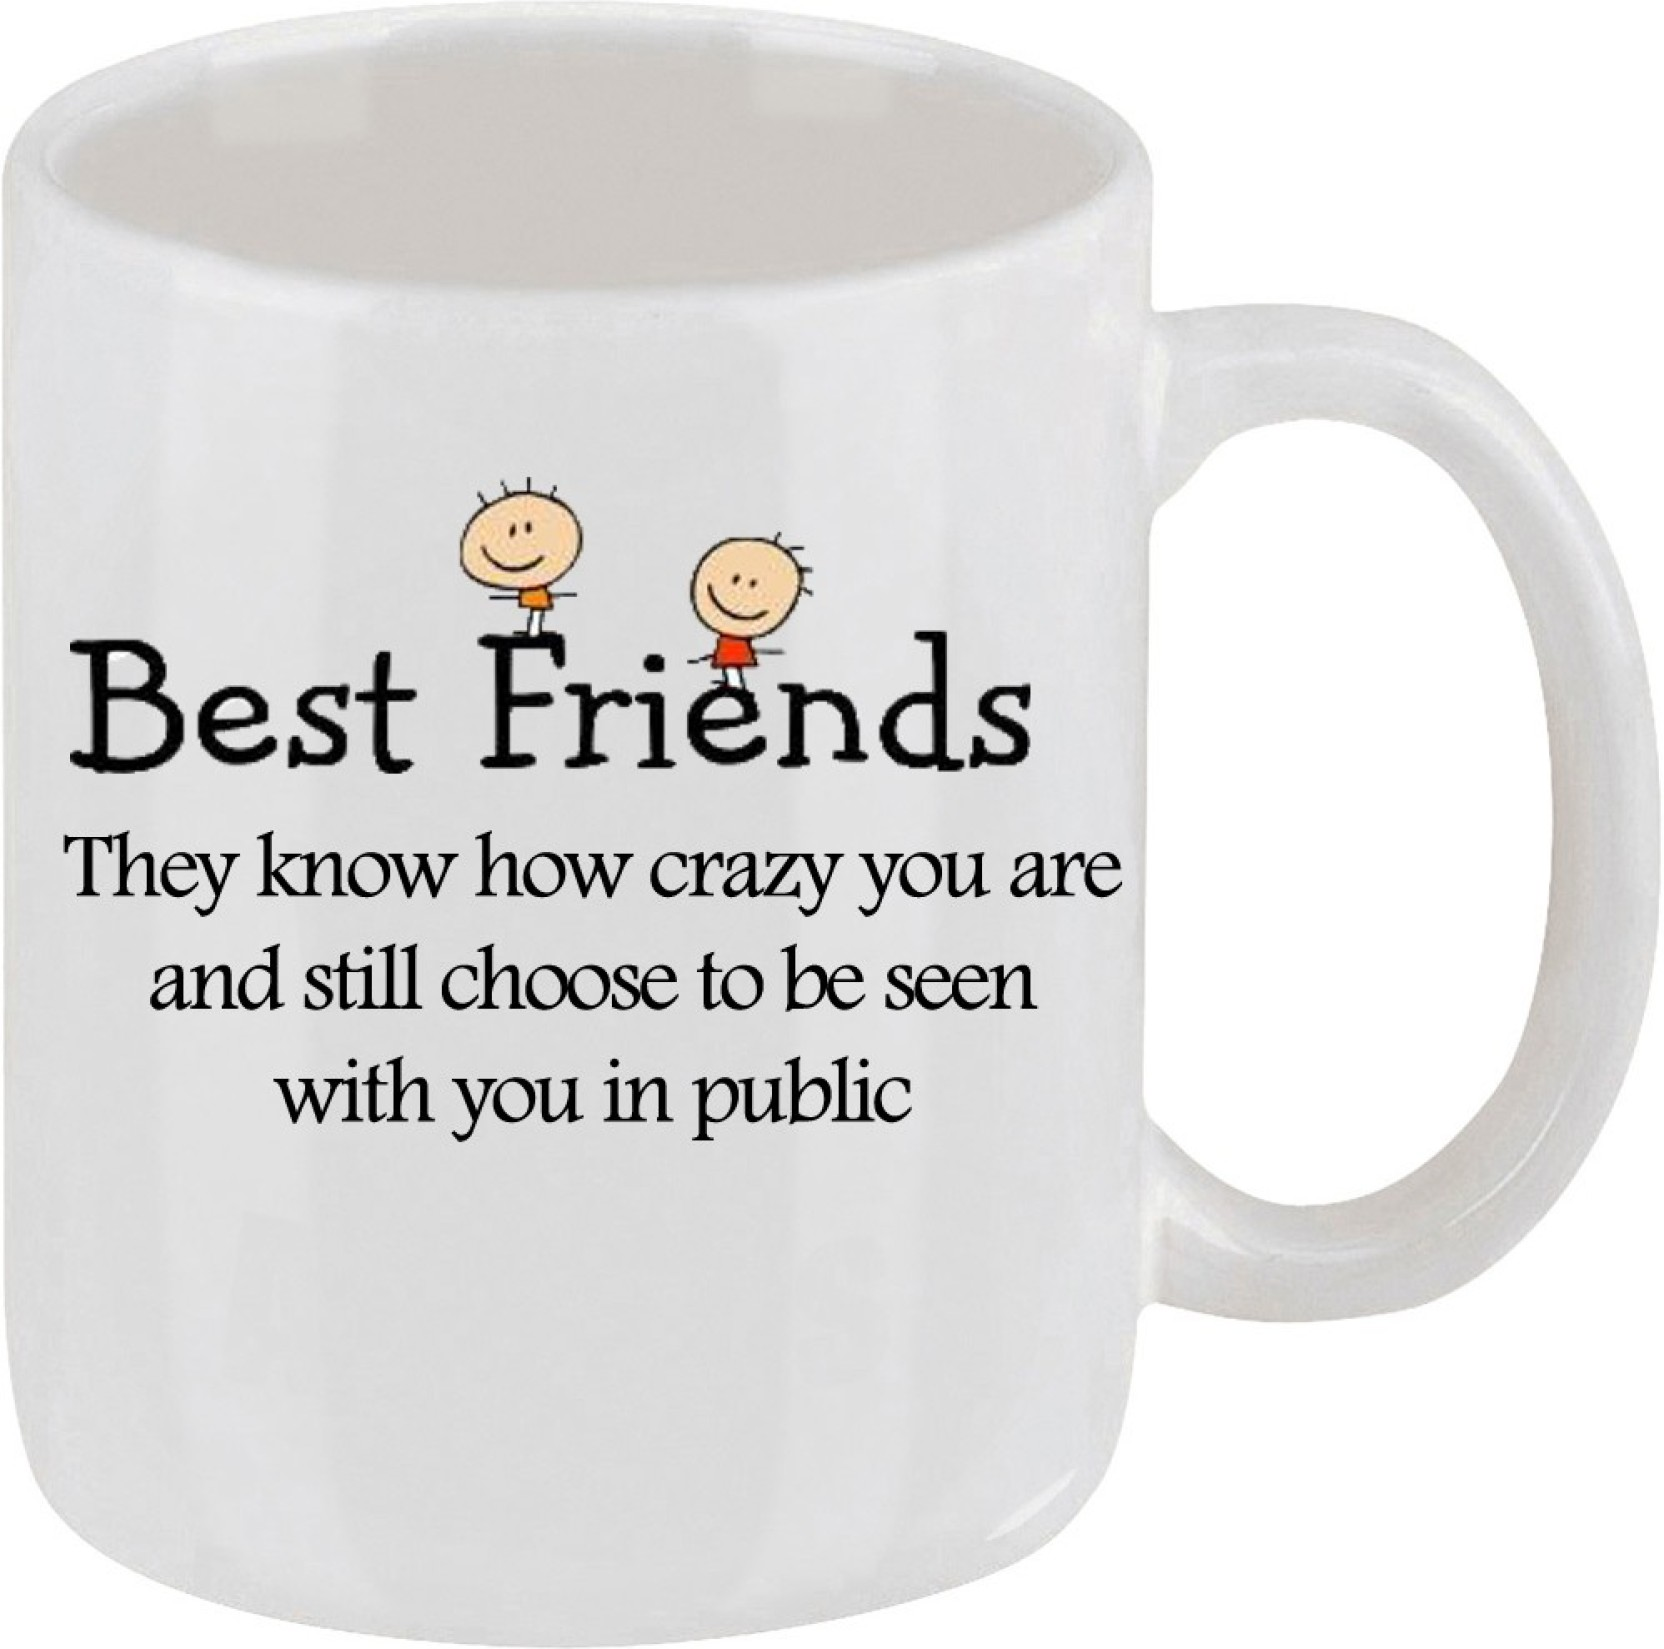 Quotes About Coffee And Friendship Ellicon C203 Funny Friendship Quotes Coffee Ceramic Mug Price In